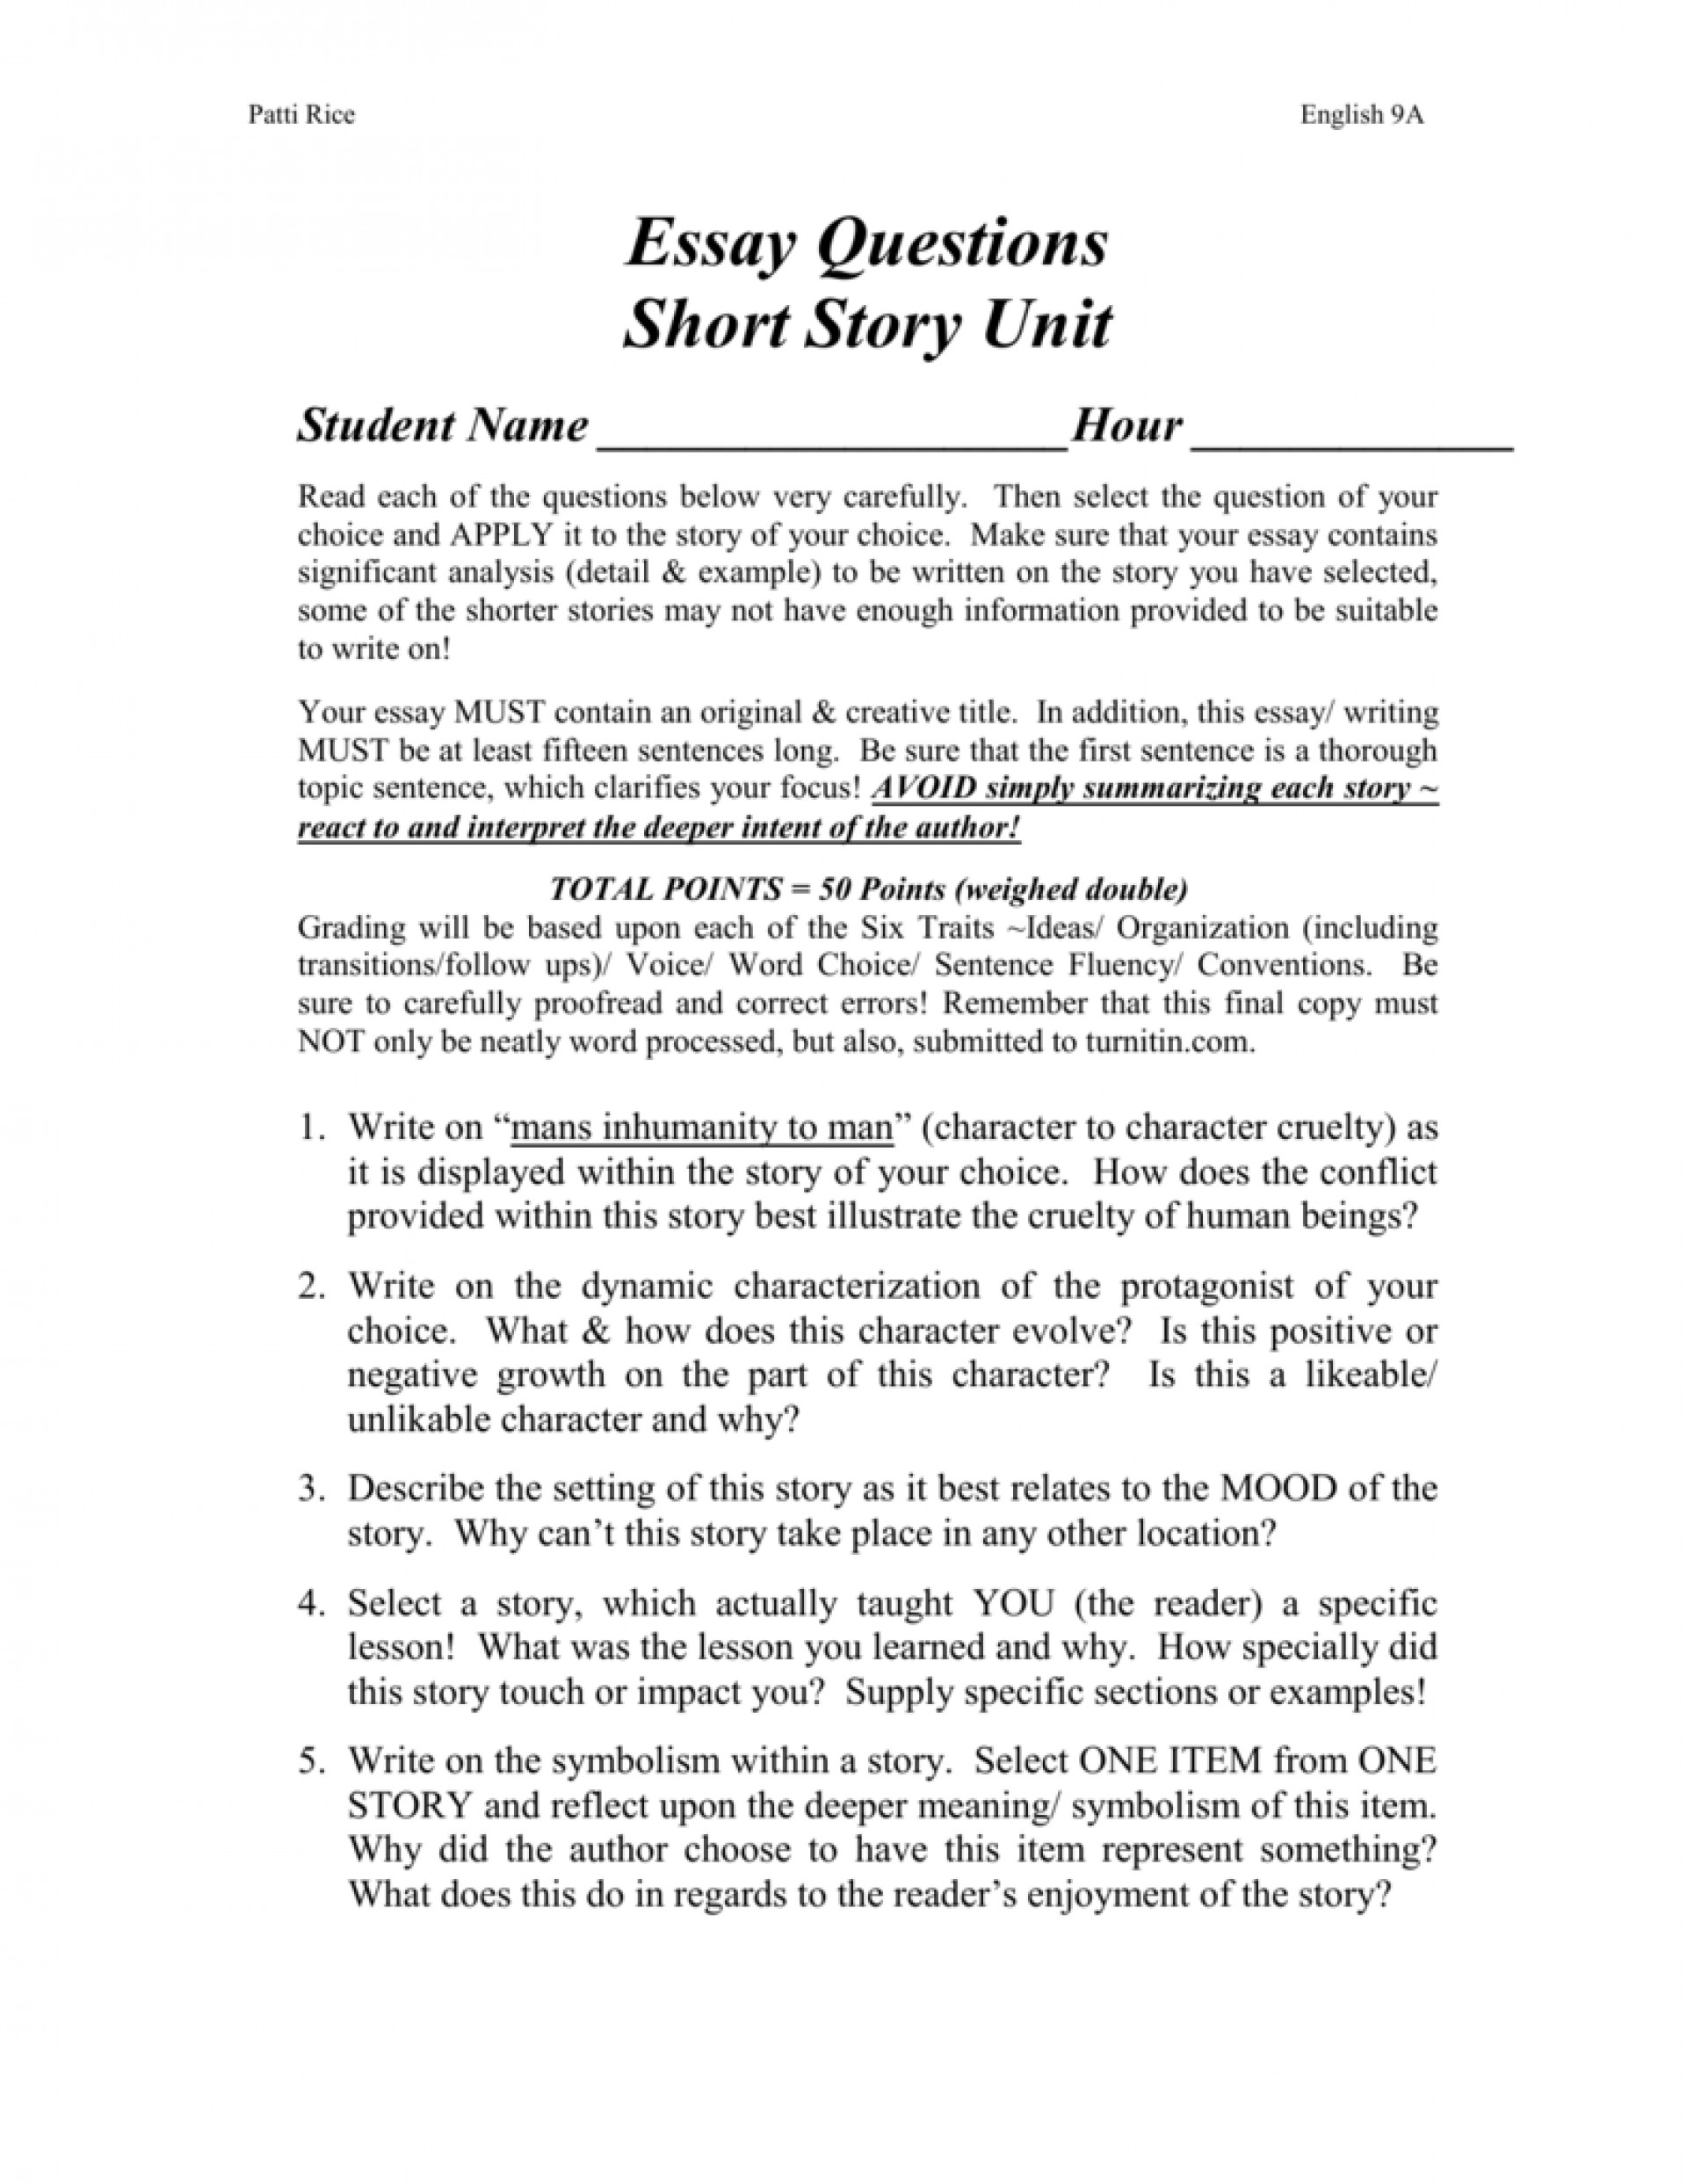 007 008001643 1 Short Stories In Essays Essay Impressive Fiction Analysis Examples Story Format 1920